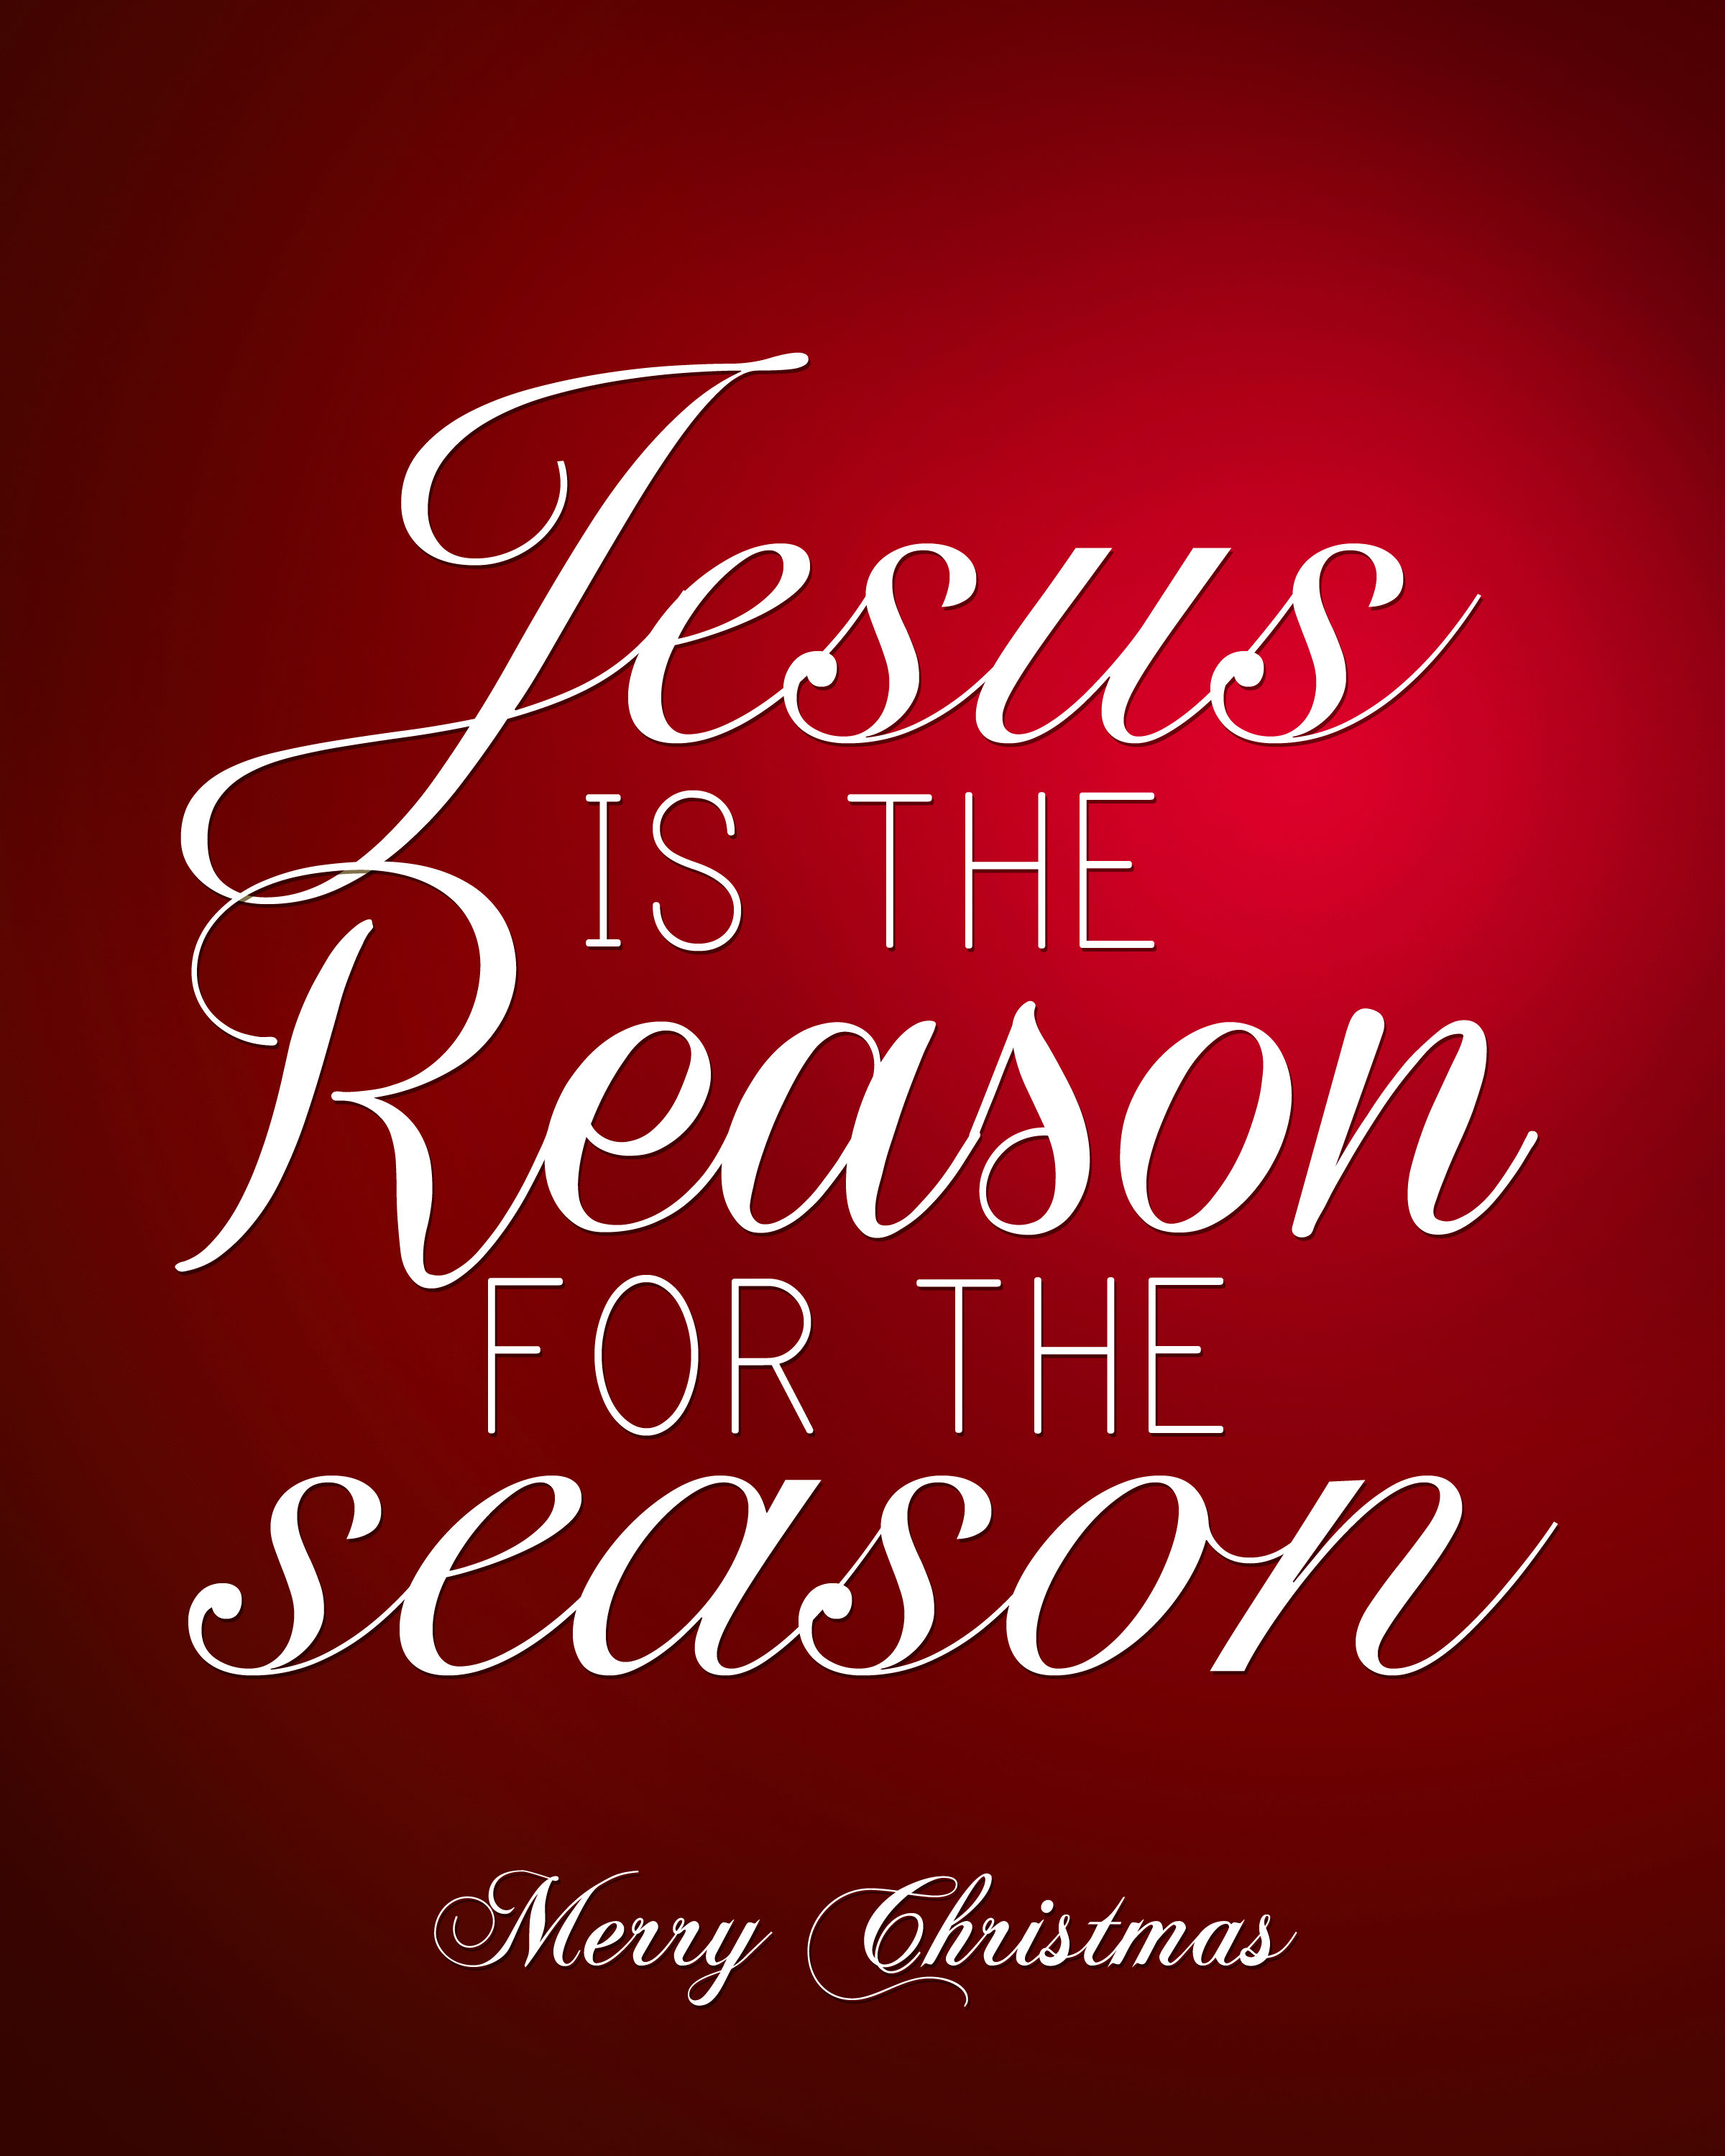 Relieving Season Quote Jesus Is Reason Family Religious Quotes Love Jesus Is Reason Religious Quotes Season Quote inspiration Religious Christmas Quotes